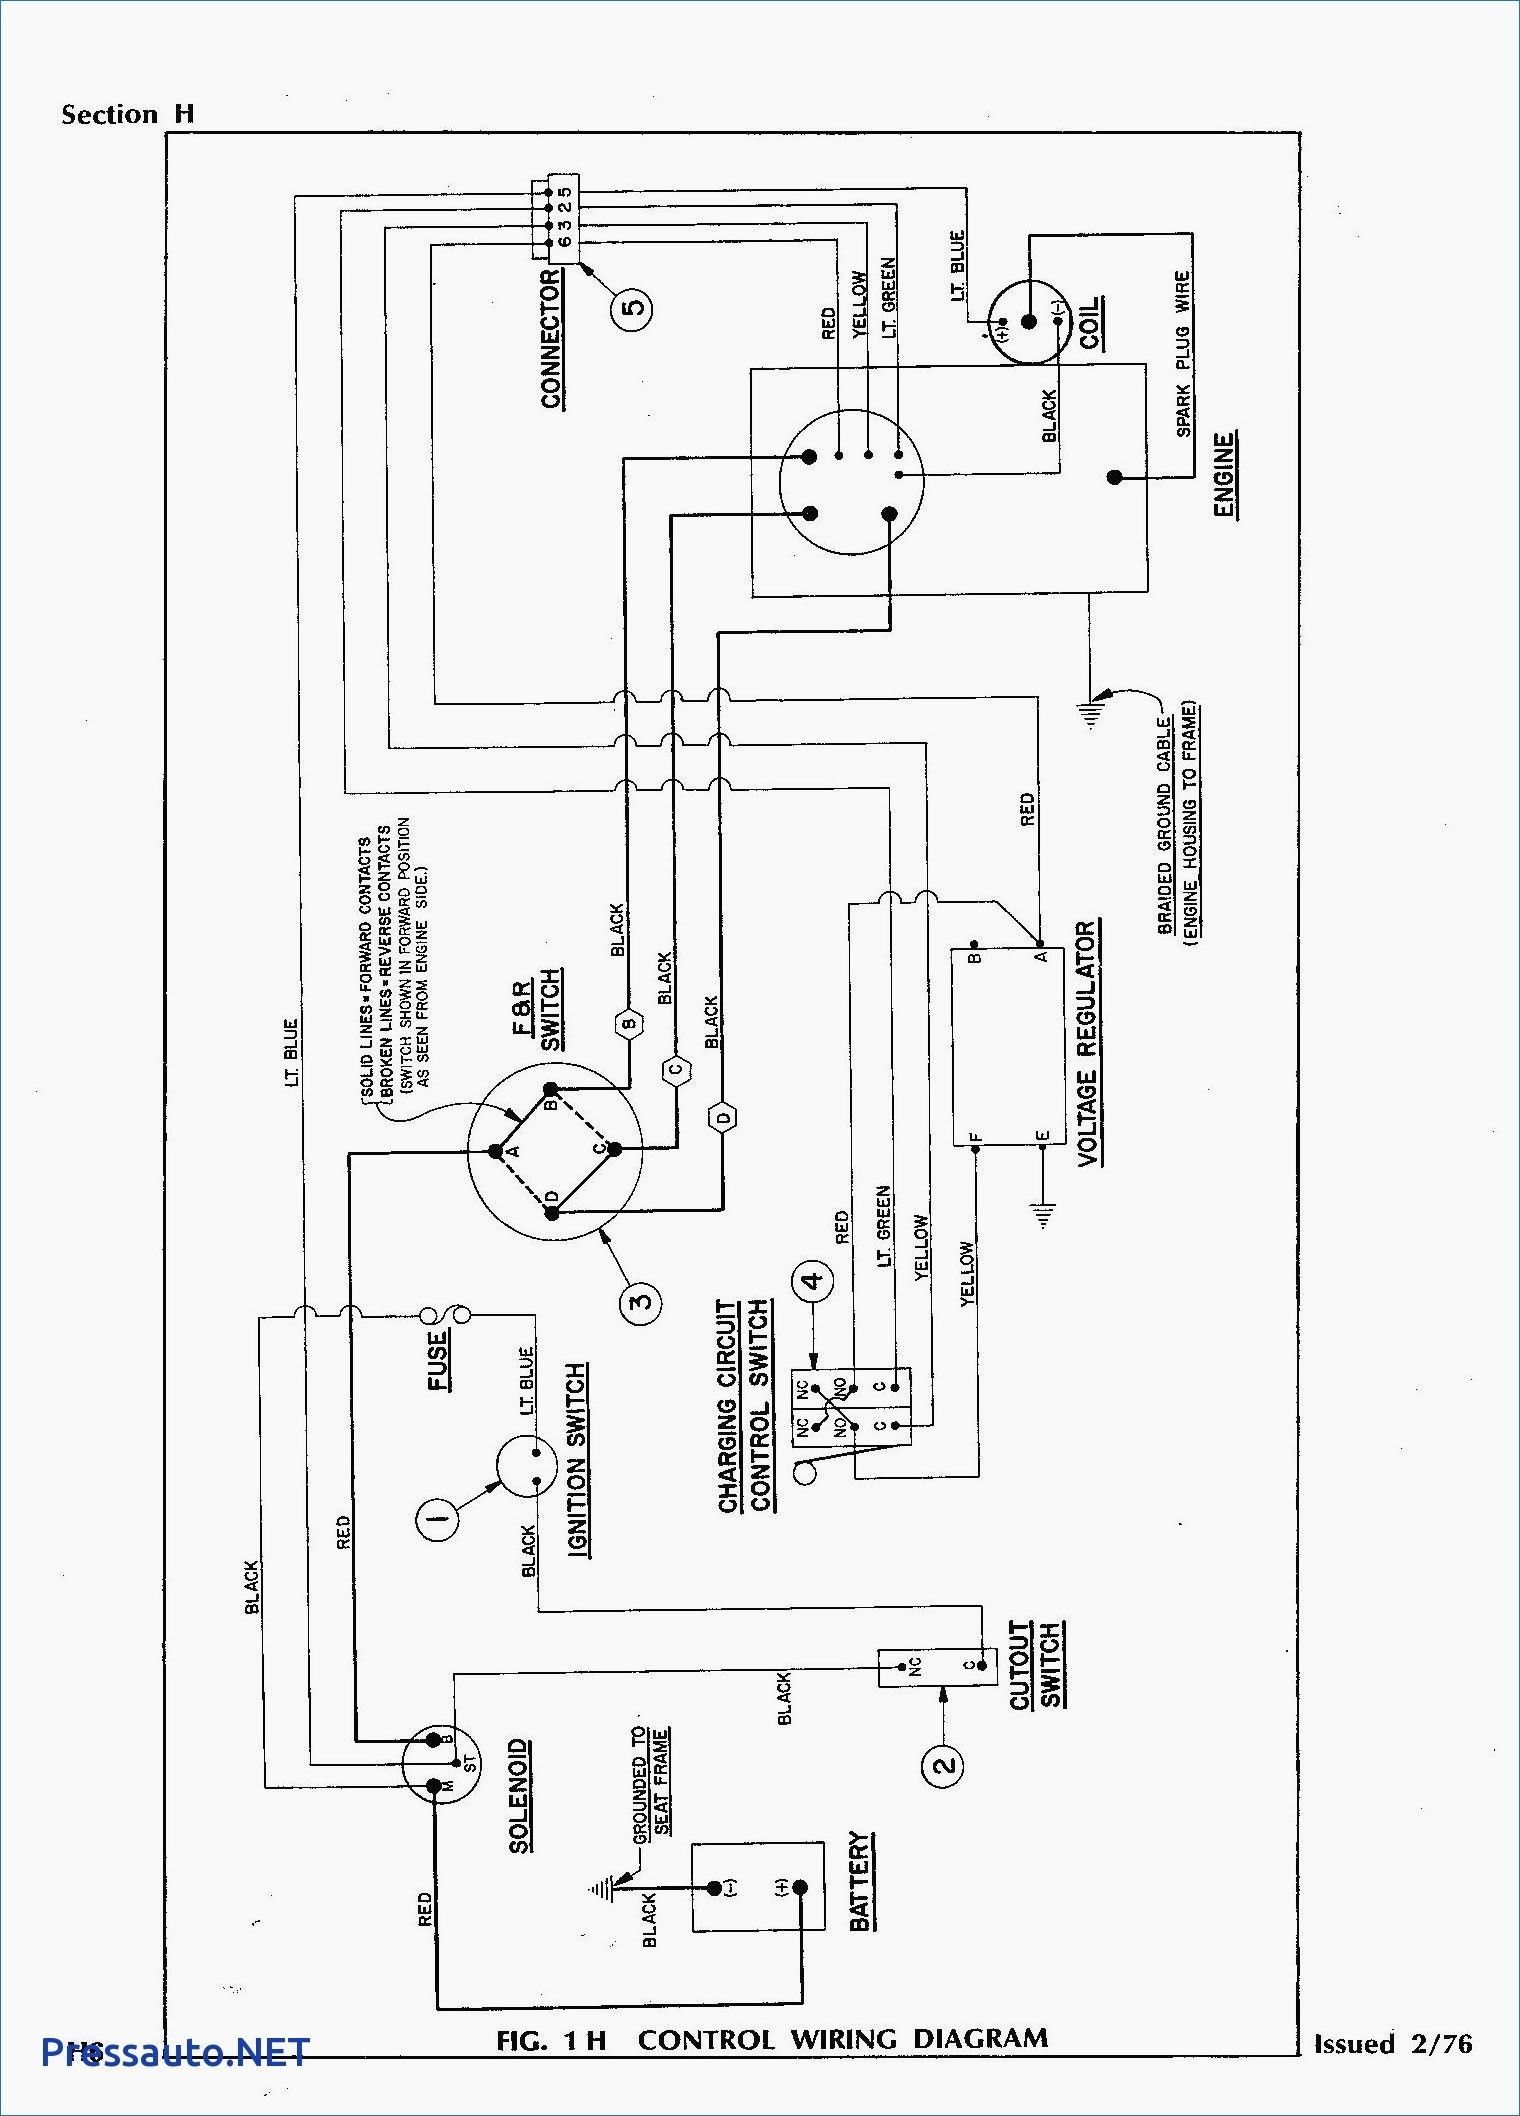 Unique Wiring Diagram Club Car Golf Cart Con Imagenes